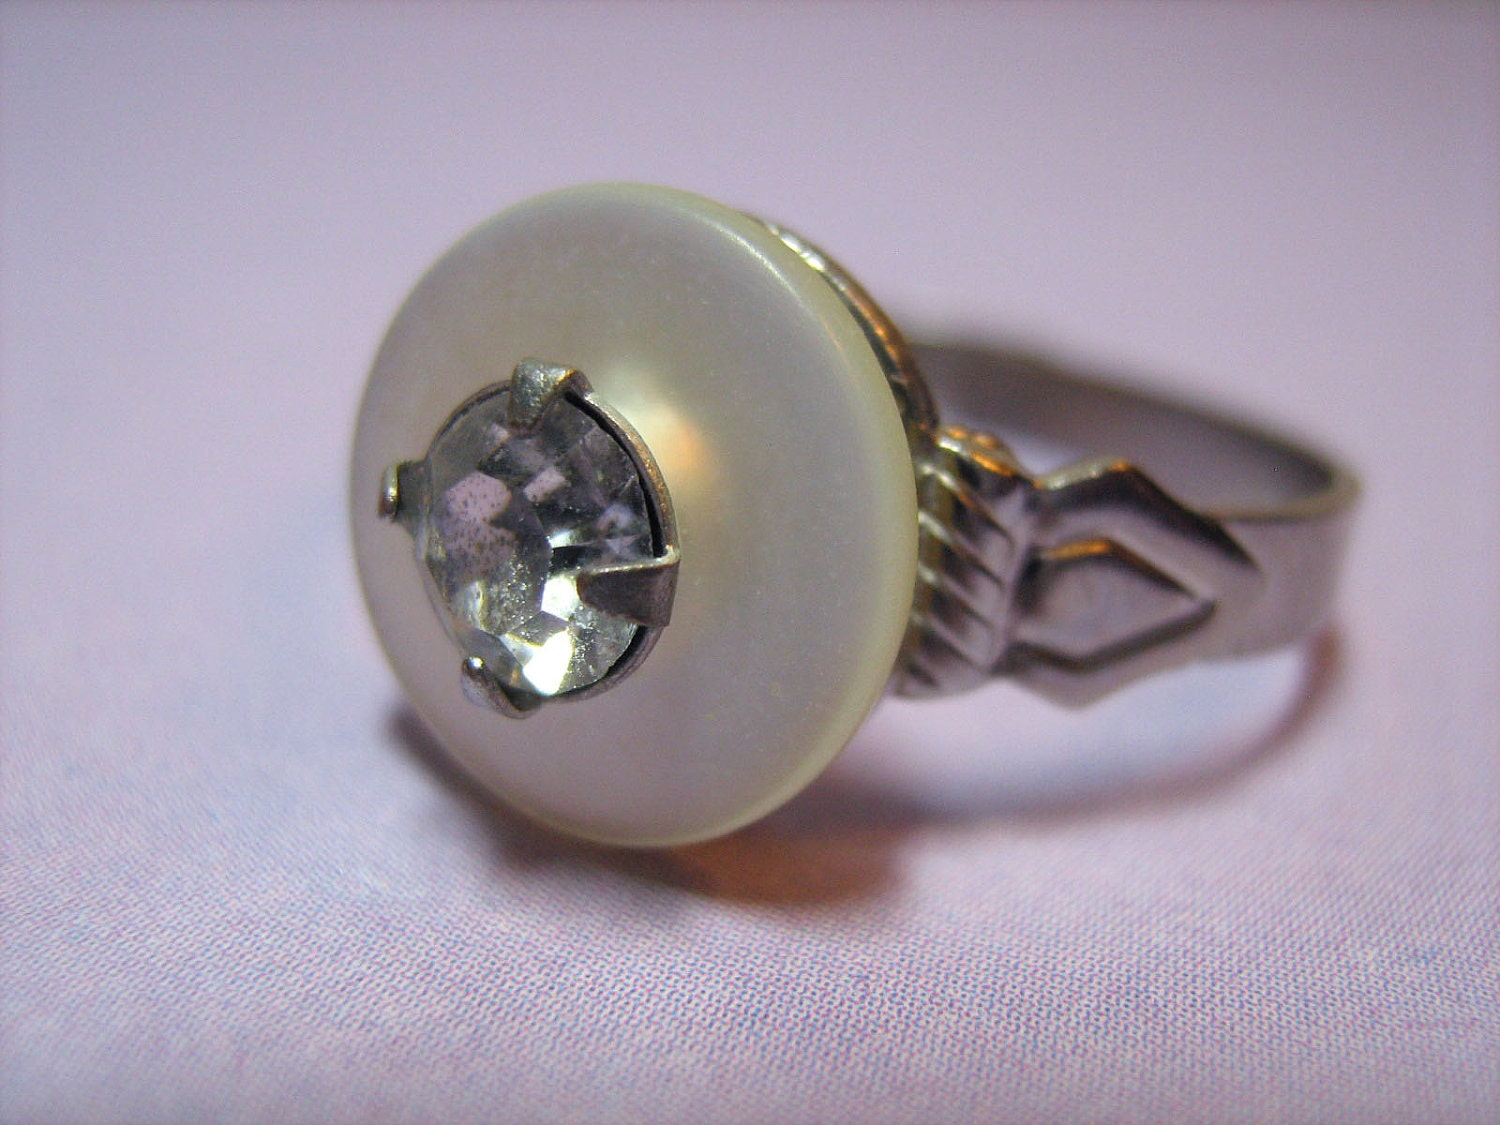 Ring: Iridescent White Vintage Button with Rhinestone on an Adjustable Silvertone Metal Ring - Hypo-Allergenic, Nickel Free for Women